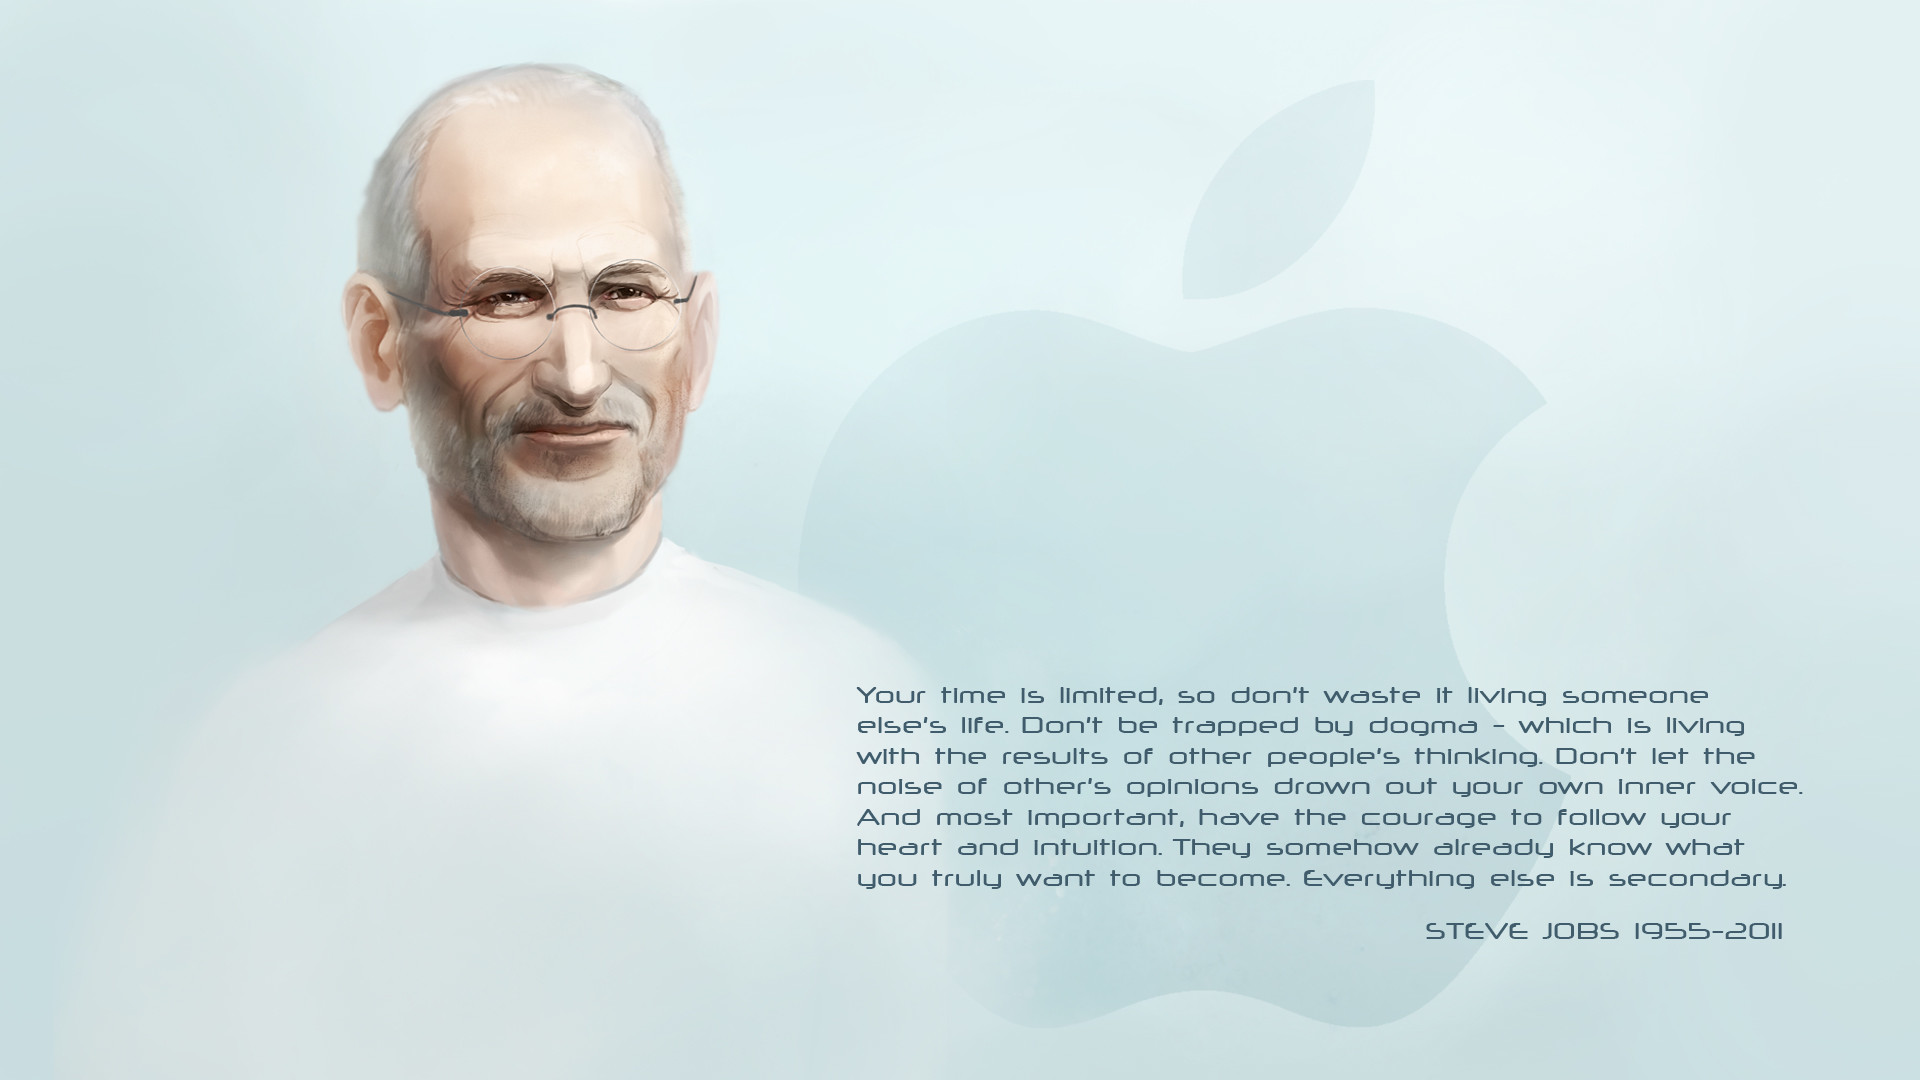 Three Inspiring Quotes By Steve Jobs That Should Be - 4k Wallpaper Quotes Steve Jobs 4k - HD Wallpaper